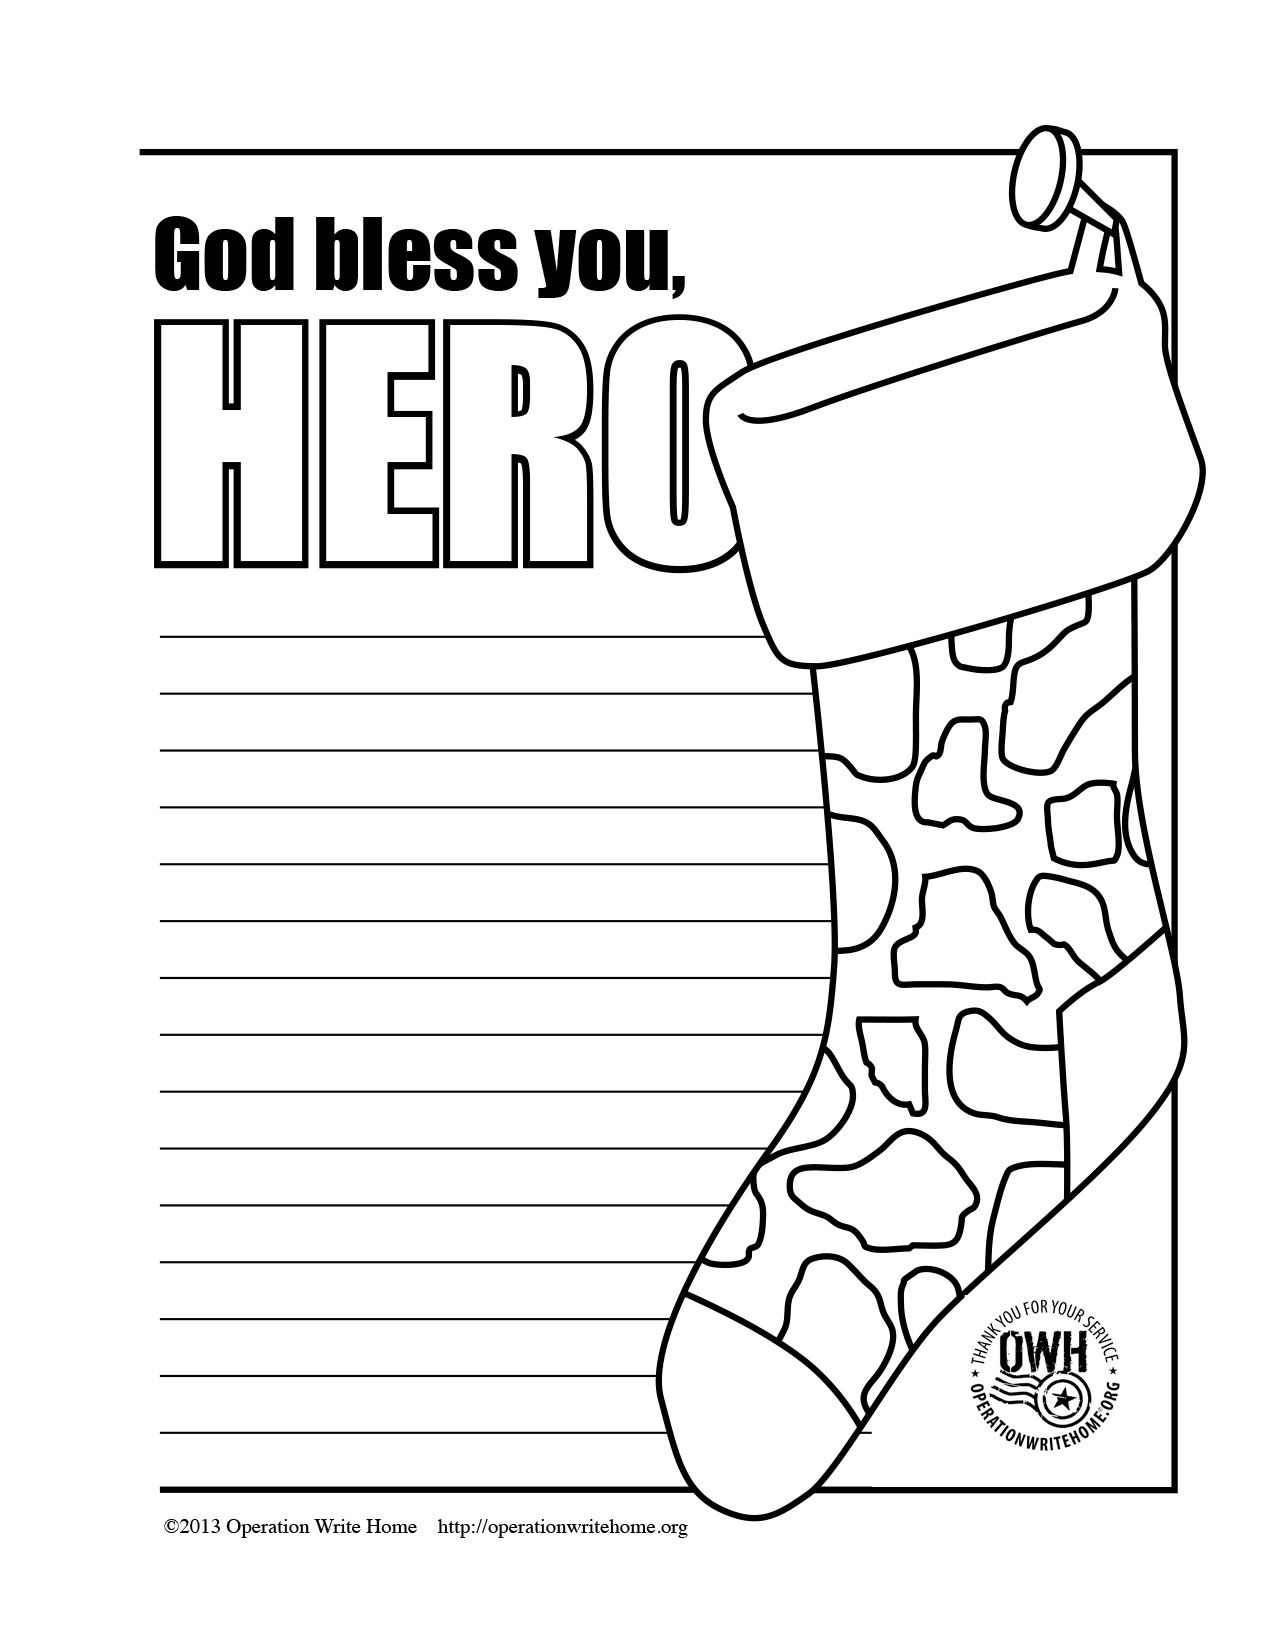 Coloring Pages Operation Write Home Military Christmas Cards Military Christmas Christmas Cards Kids